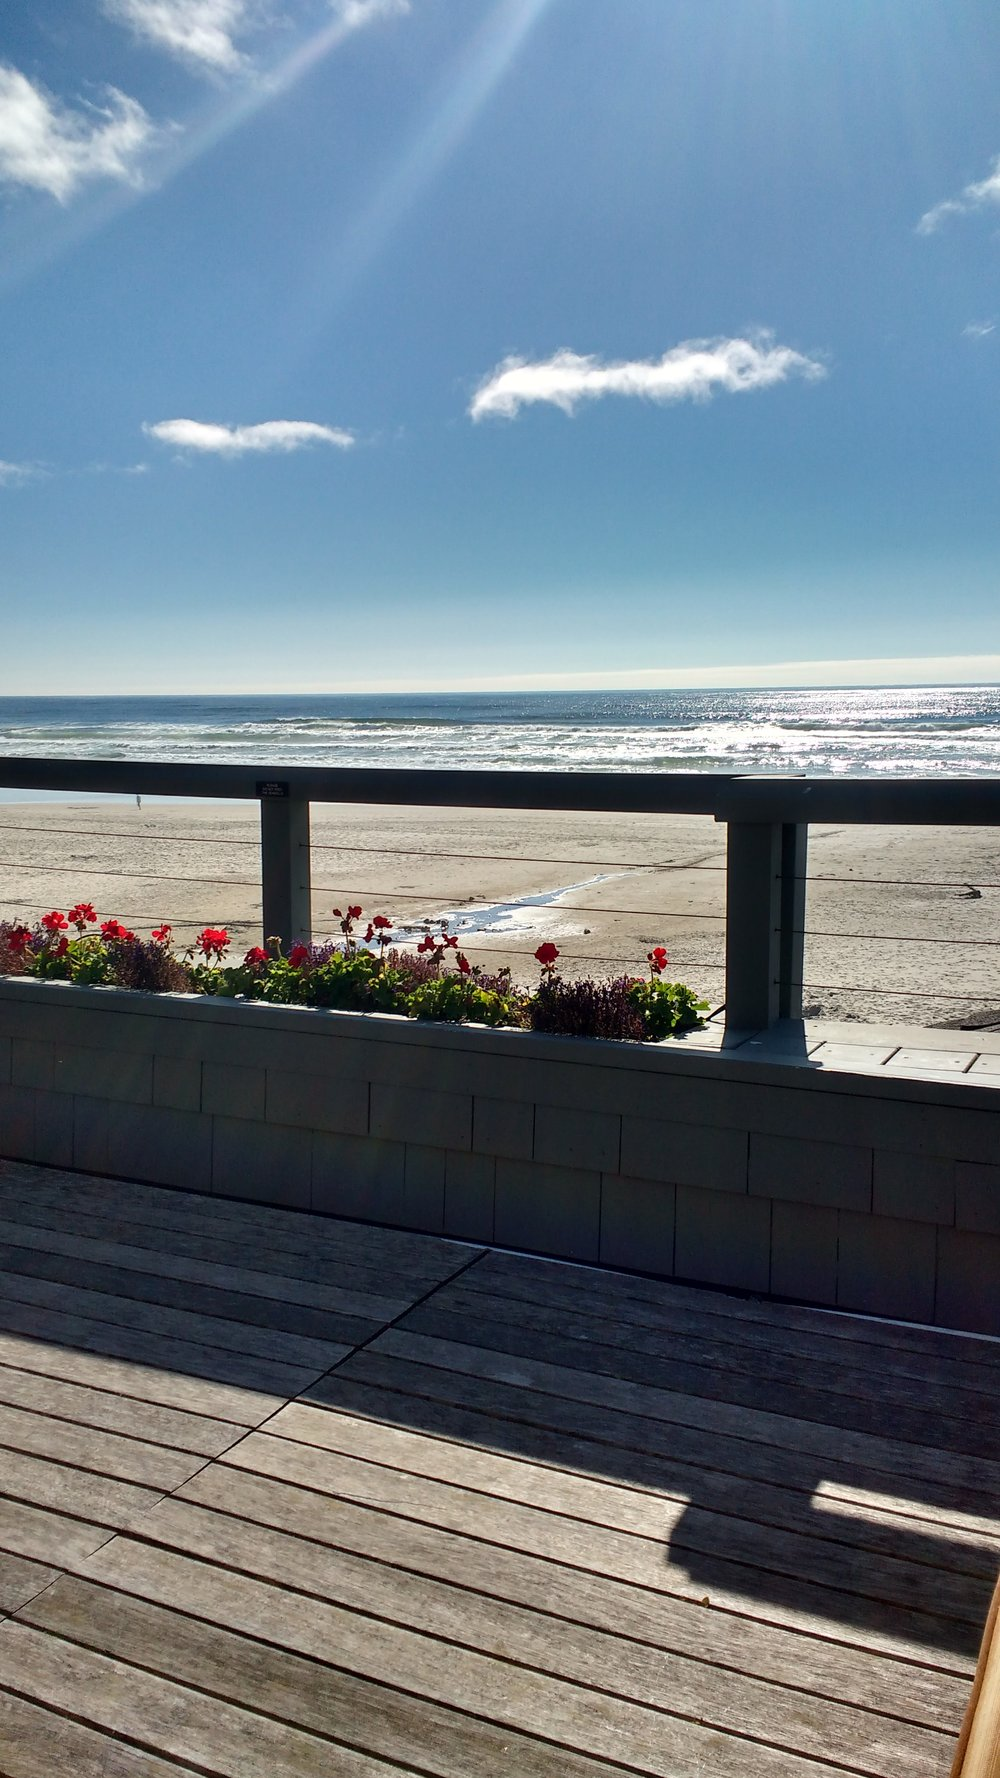 For Stephanie Inn Sojourn participants fortunate enough to tie in an overnight stay, well-appointed rooms with stunning ocean views are their specialty. Viki Eierdam